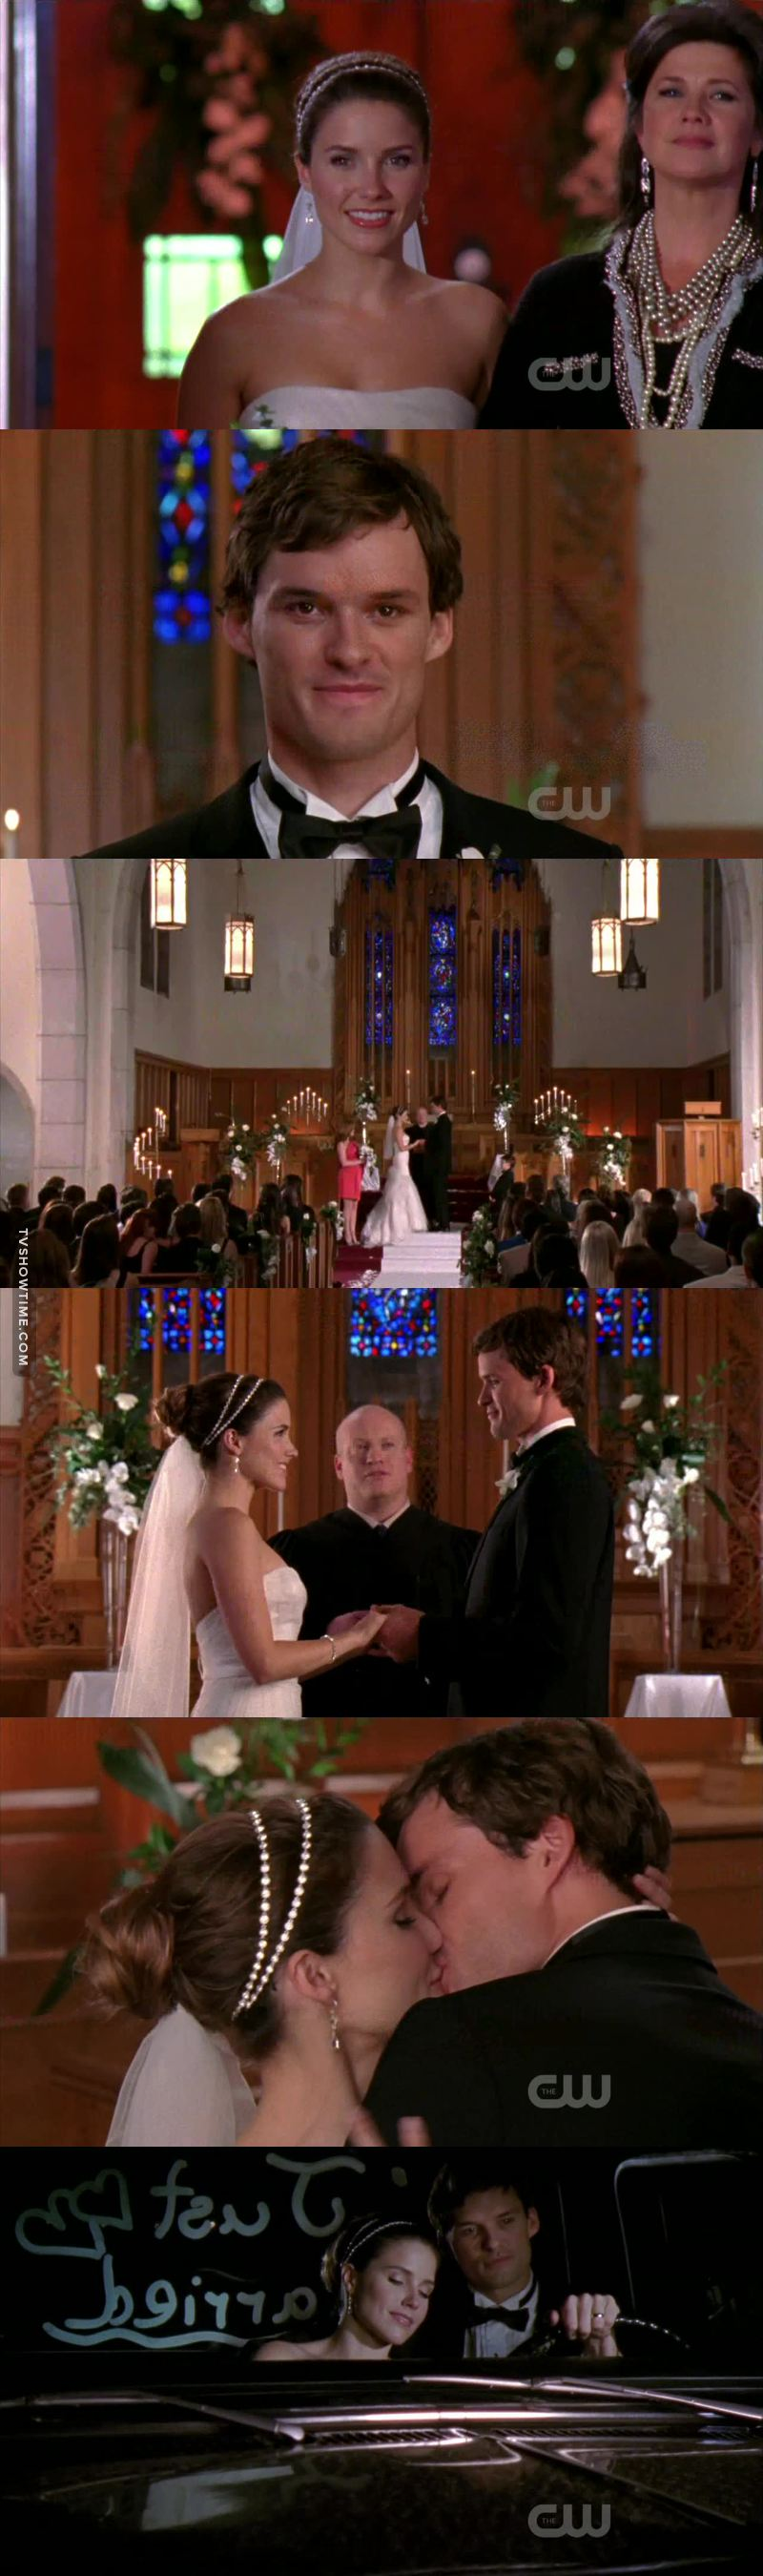 I'm so so happy for them. Brooke deserves all the love in the world and I'm glad she found Julian, an amazing guy who loves her the way she deserves to be loved. Their wedding was perfect, I cried tears of joy. Jamie and Haley's speeches were too sweet ❤❤